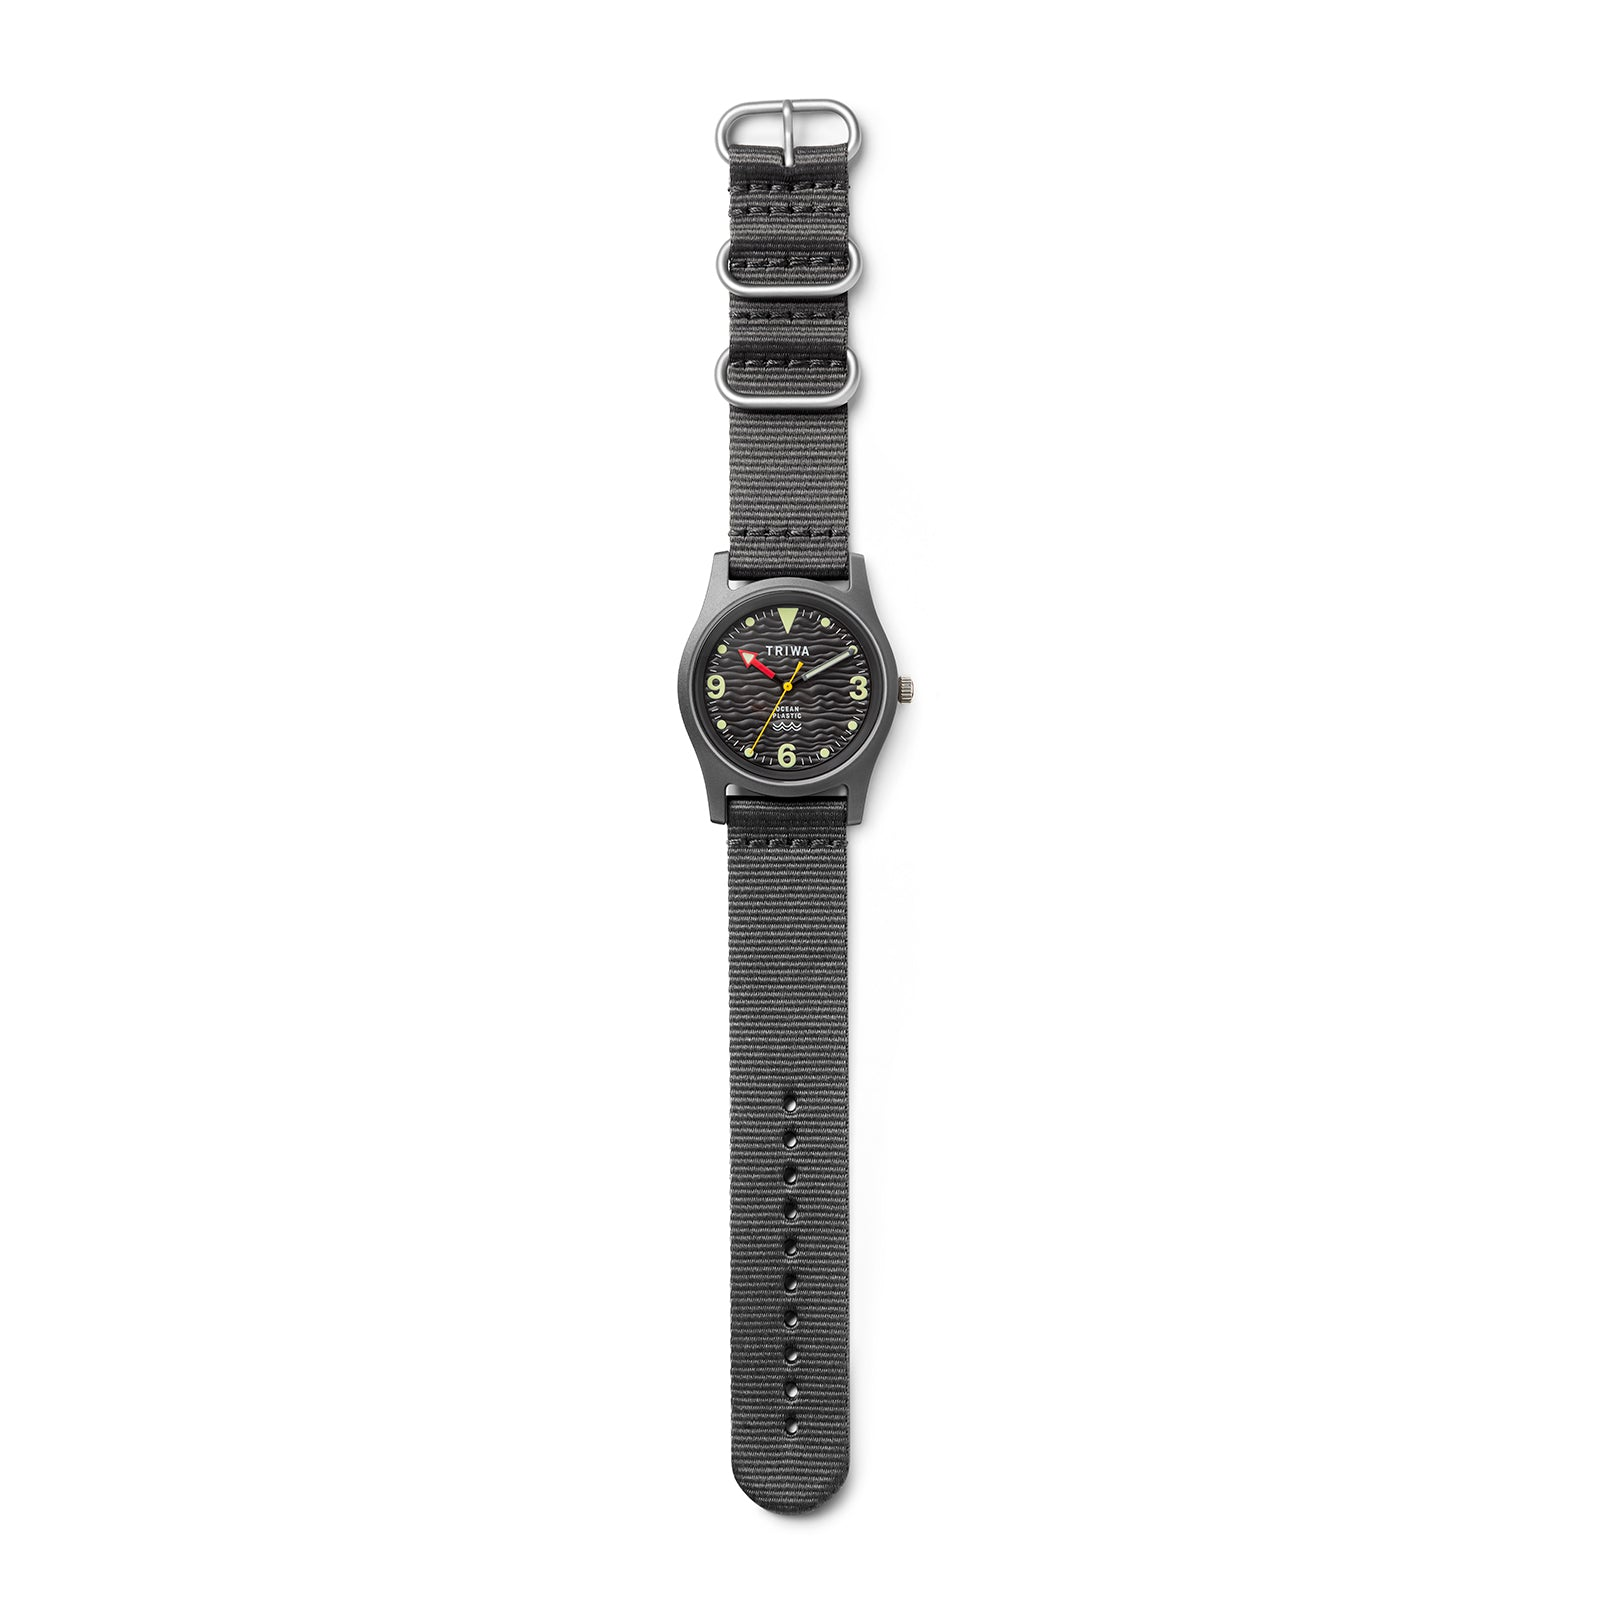 Triwa 'Time for Oceans' Wrist Watch - Recycled Ocean Plastic - Seal